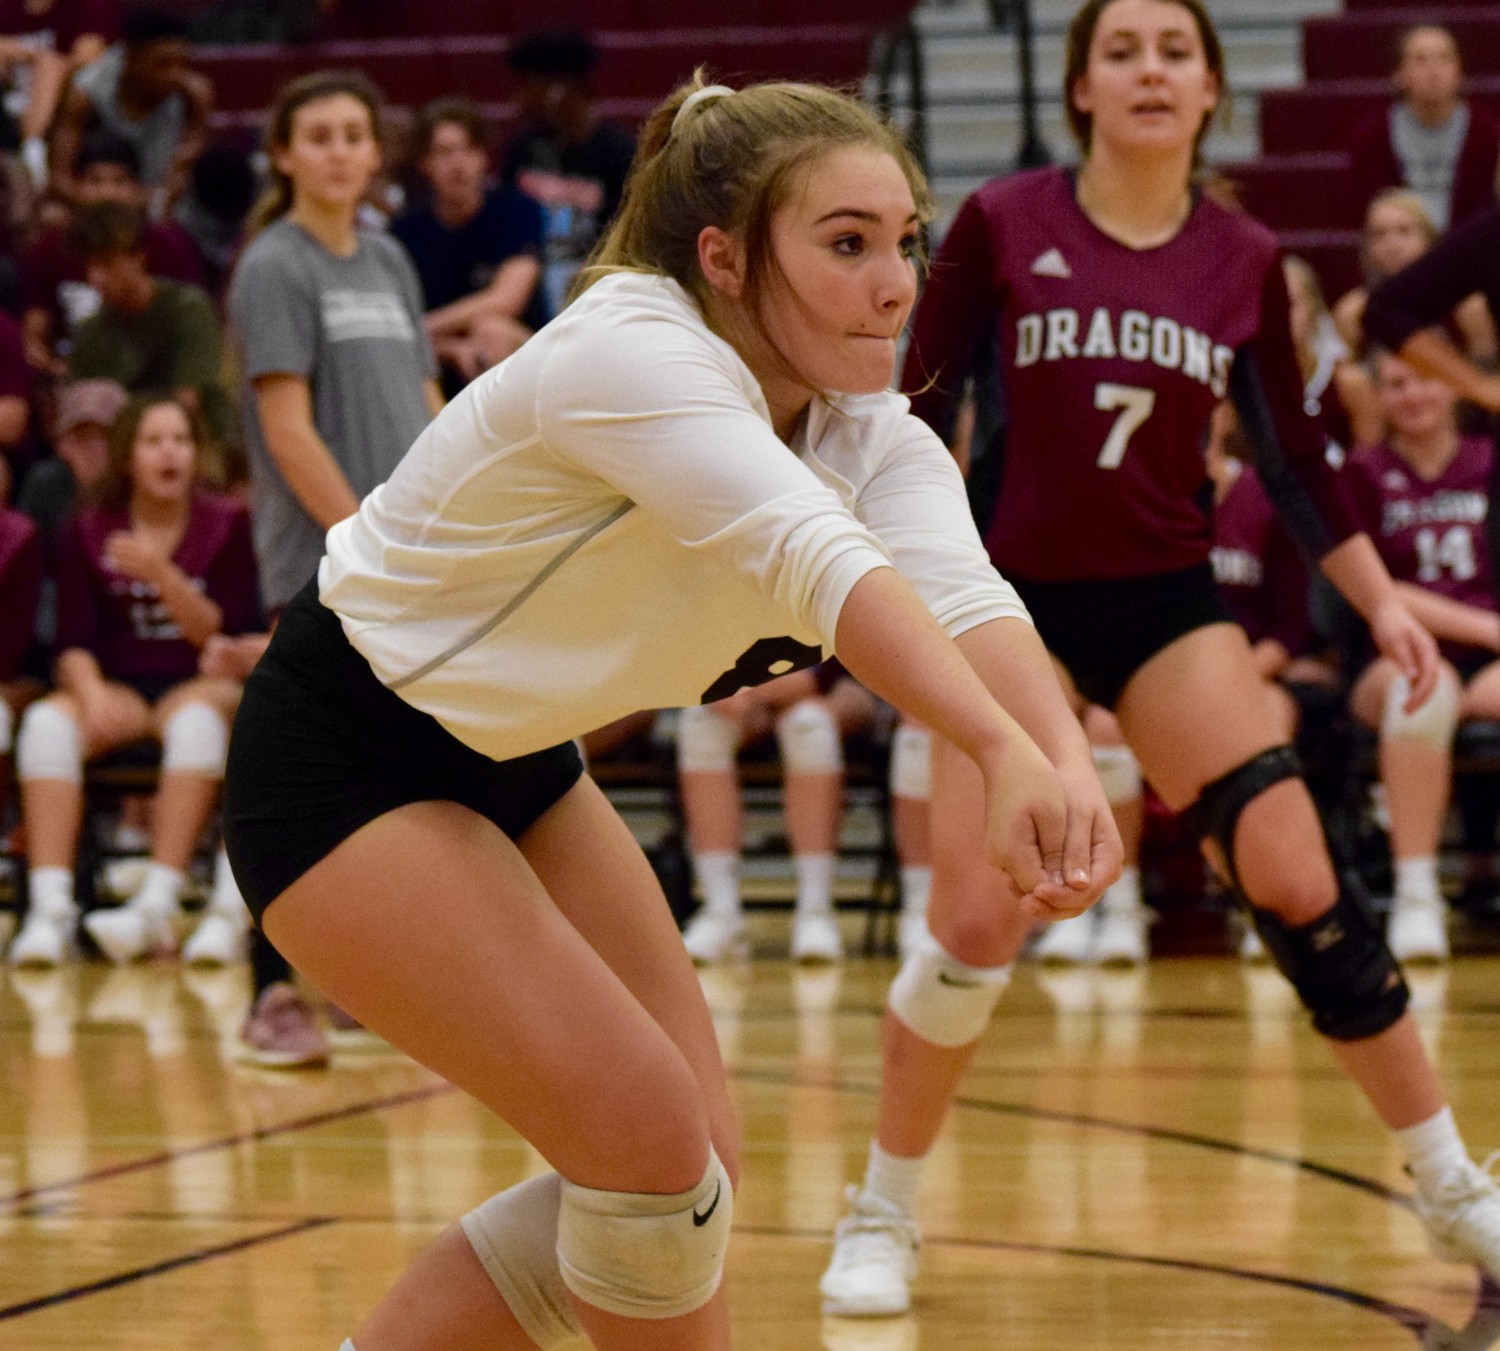 Joley Plummer and Round Rock swept Cedar Ridge 3-0 (25-18, 25-22, 25-23) at home Tuesday night.